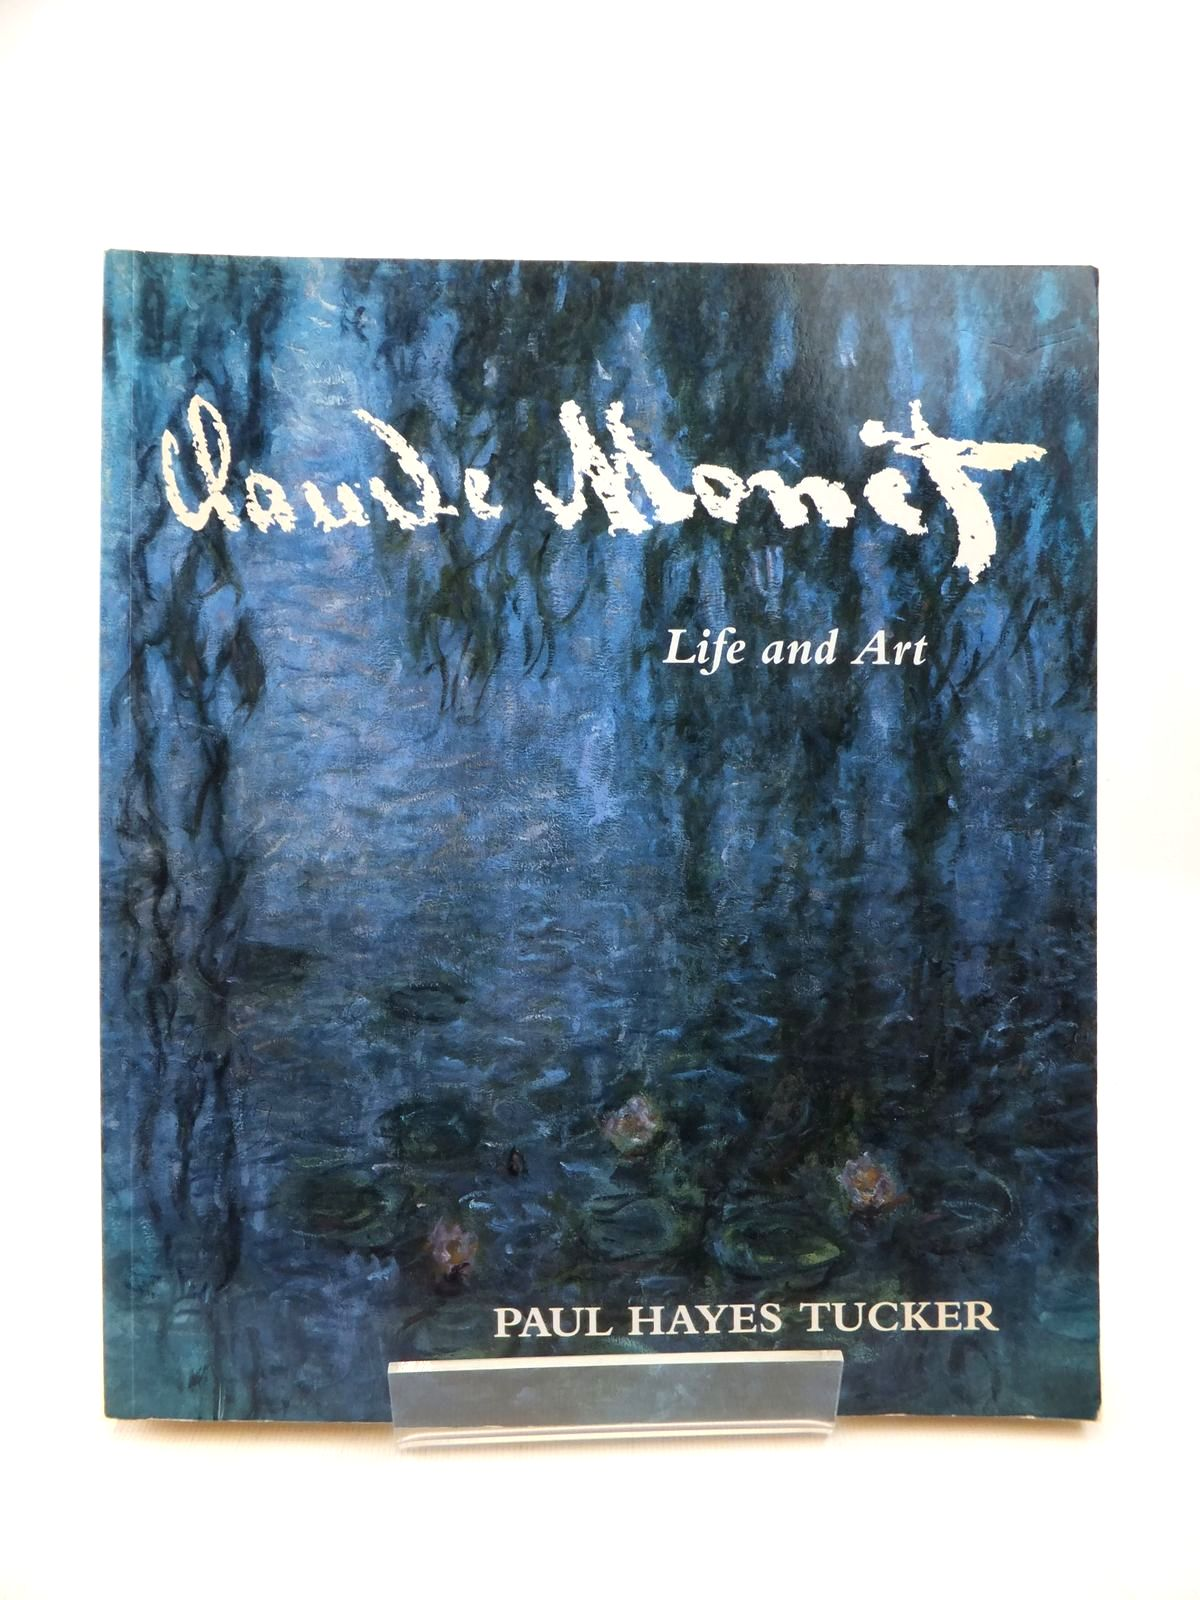 Photo of CLAUDE MONET: LIFE AND ART written by Tucker, Paul Hayes illustrated by Monet, Claude published by Yale University Press (STOCK CODE: 1815082)  for sale by Stella & Rose's Books